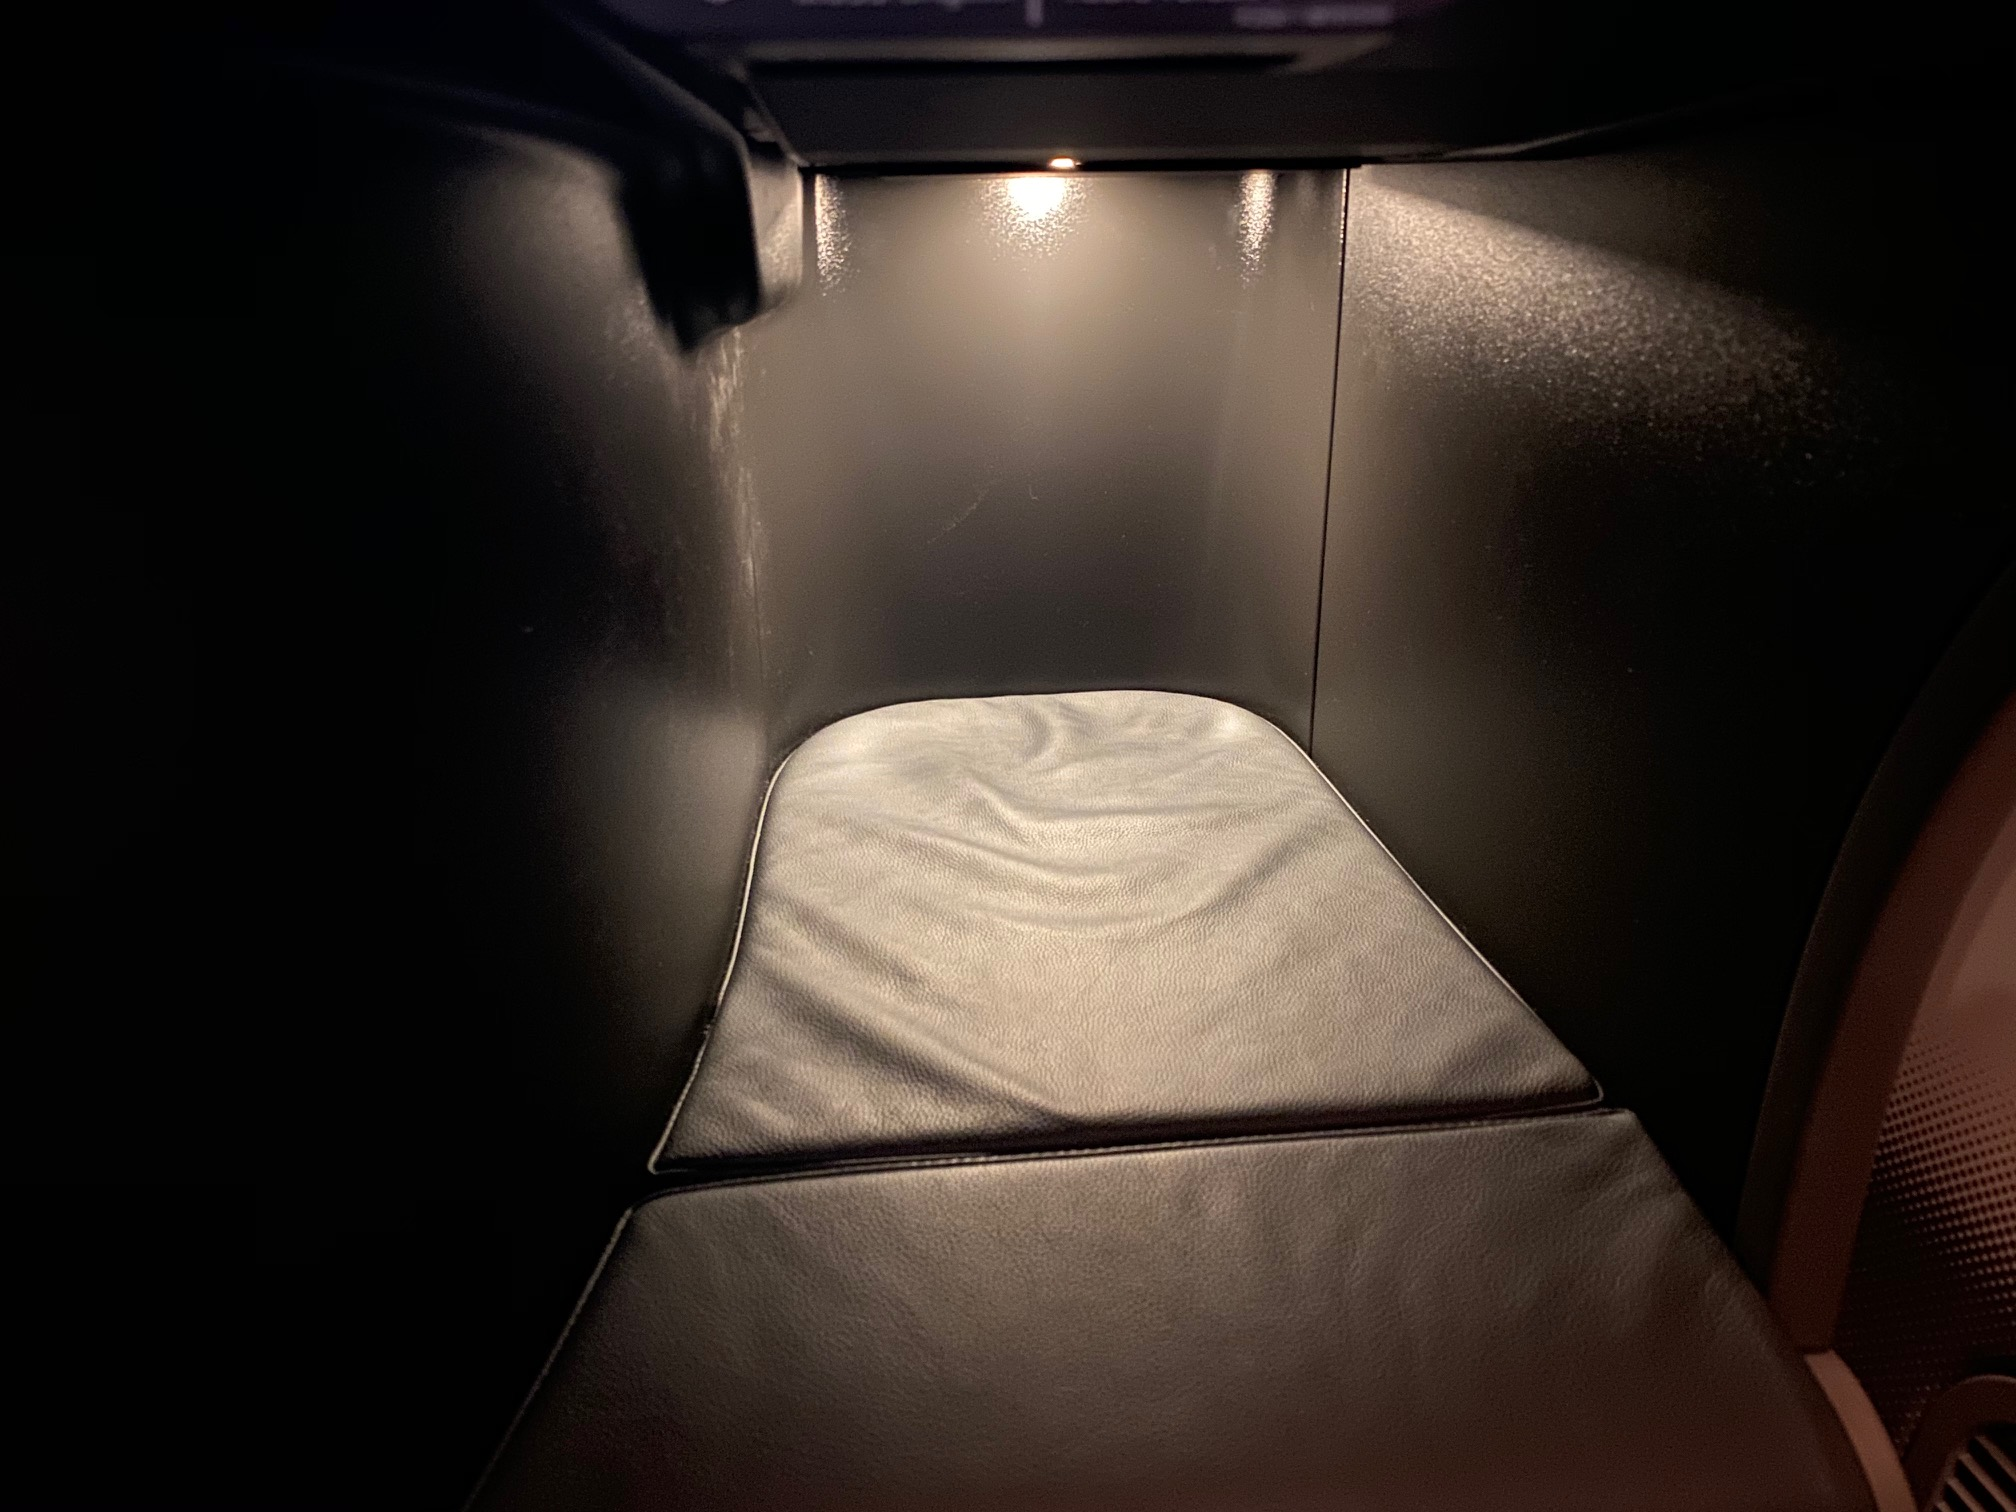 Turkish Airlines 787-9 Business Class Footwell